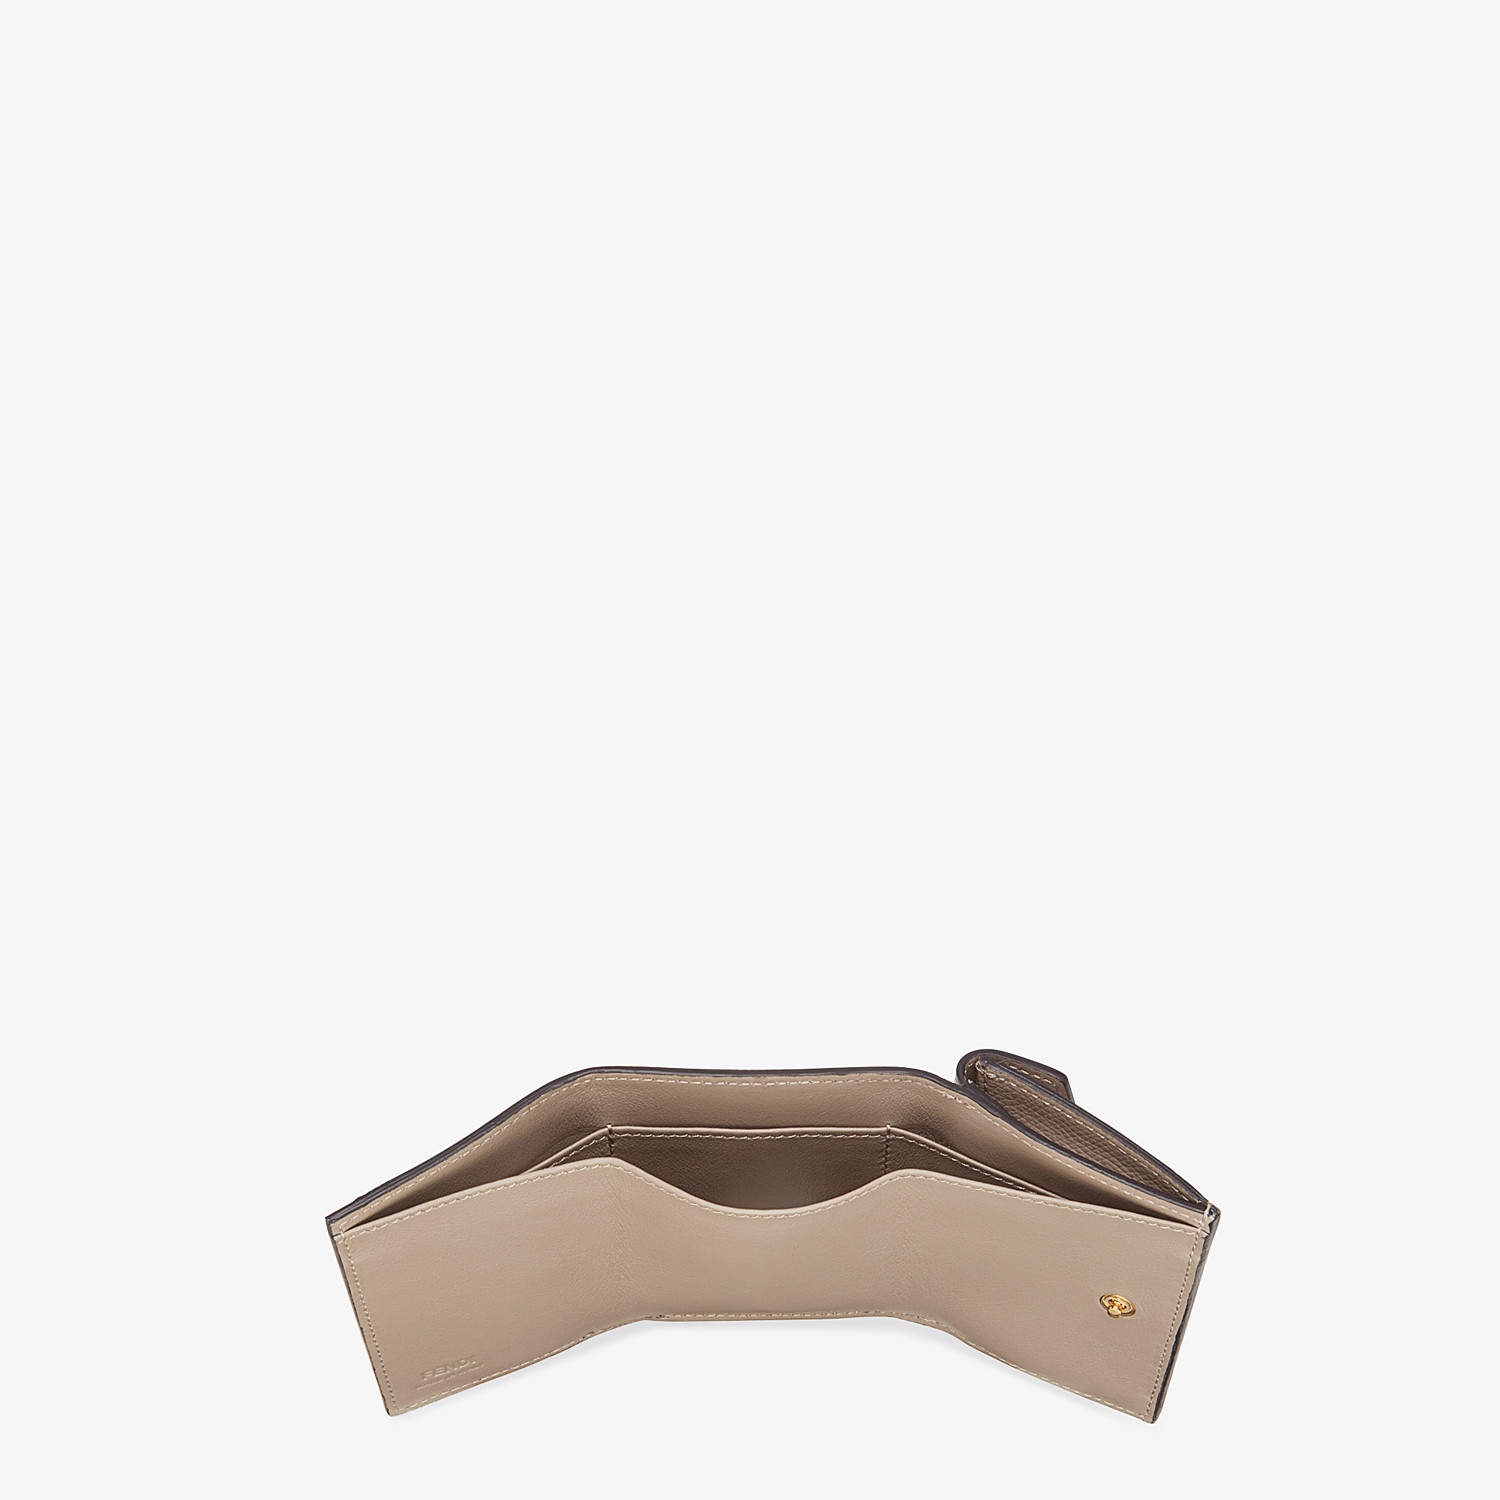 FENDI MICRO TRIFOLD - Beige leather wallet - view 5 detail